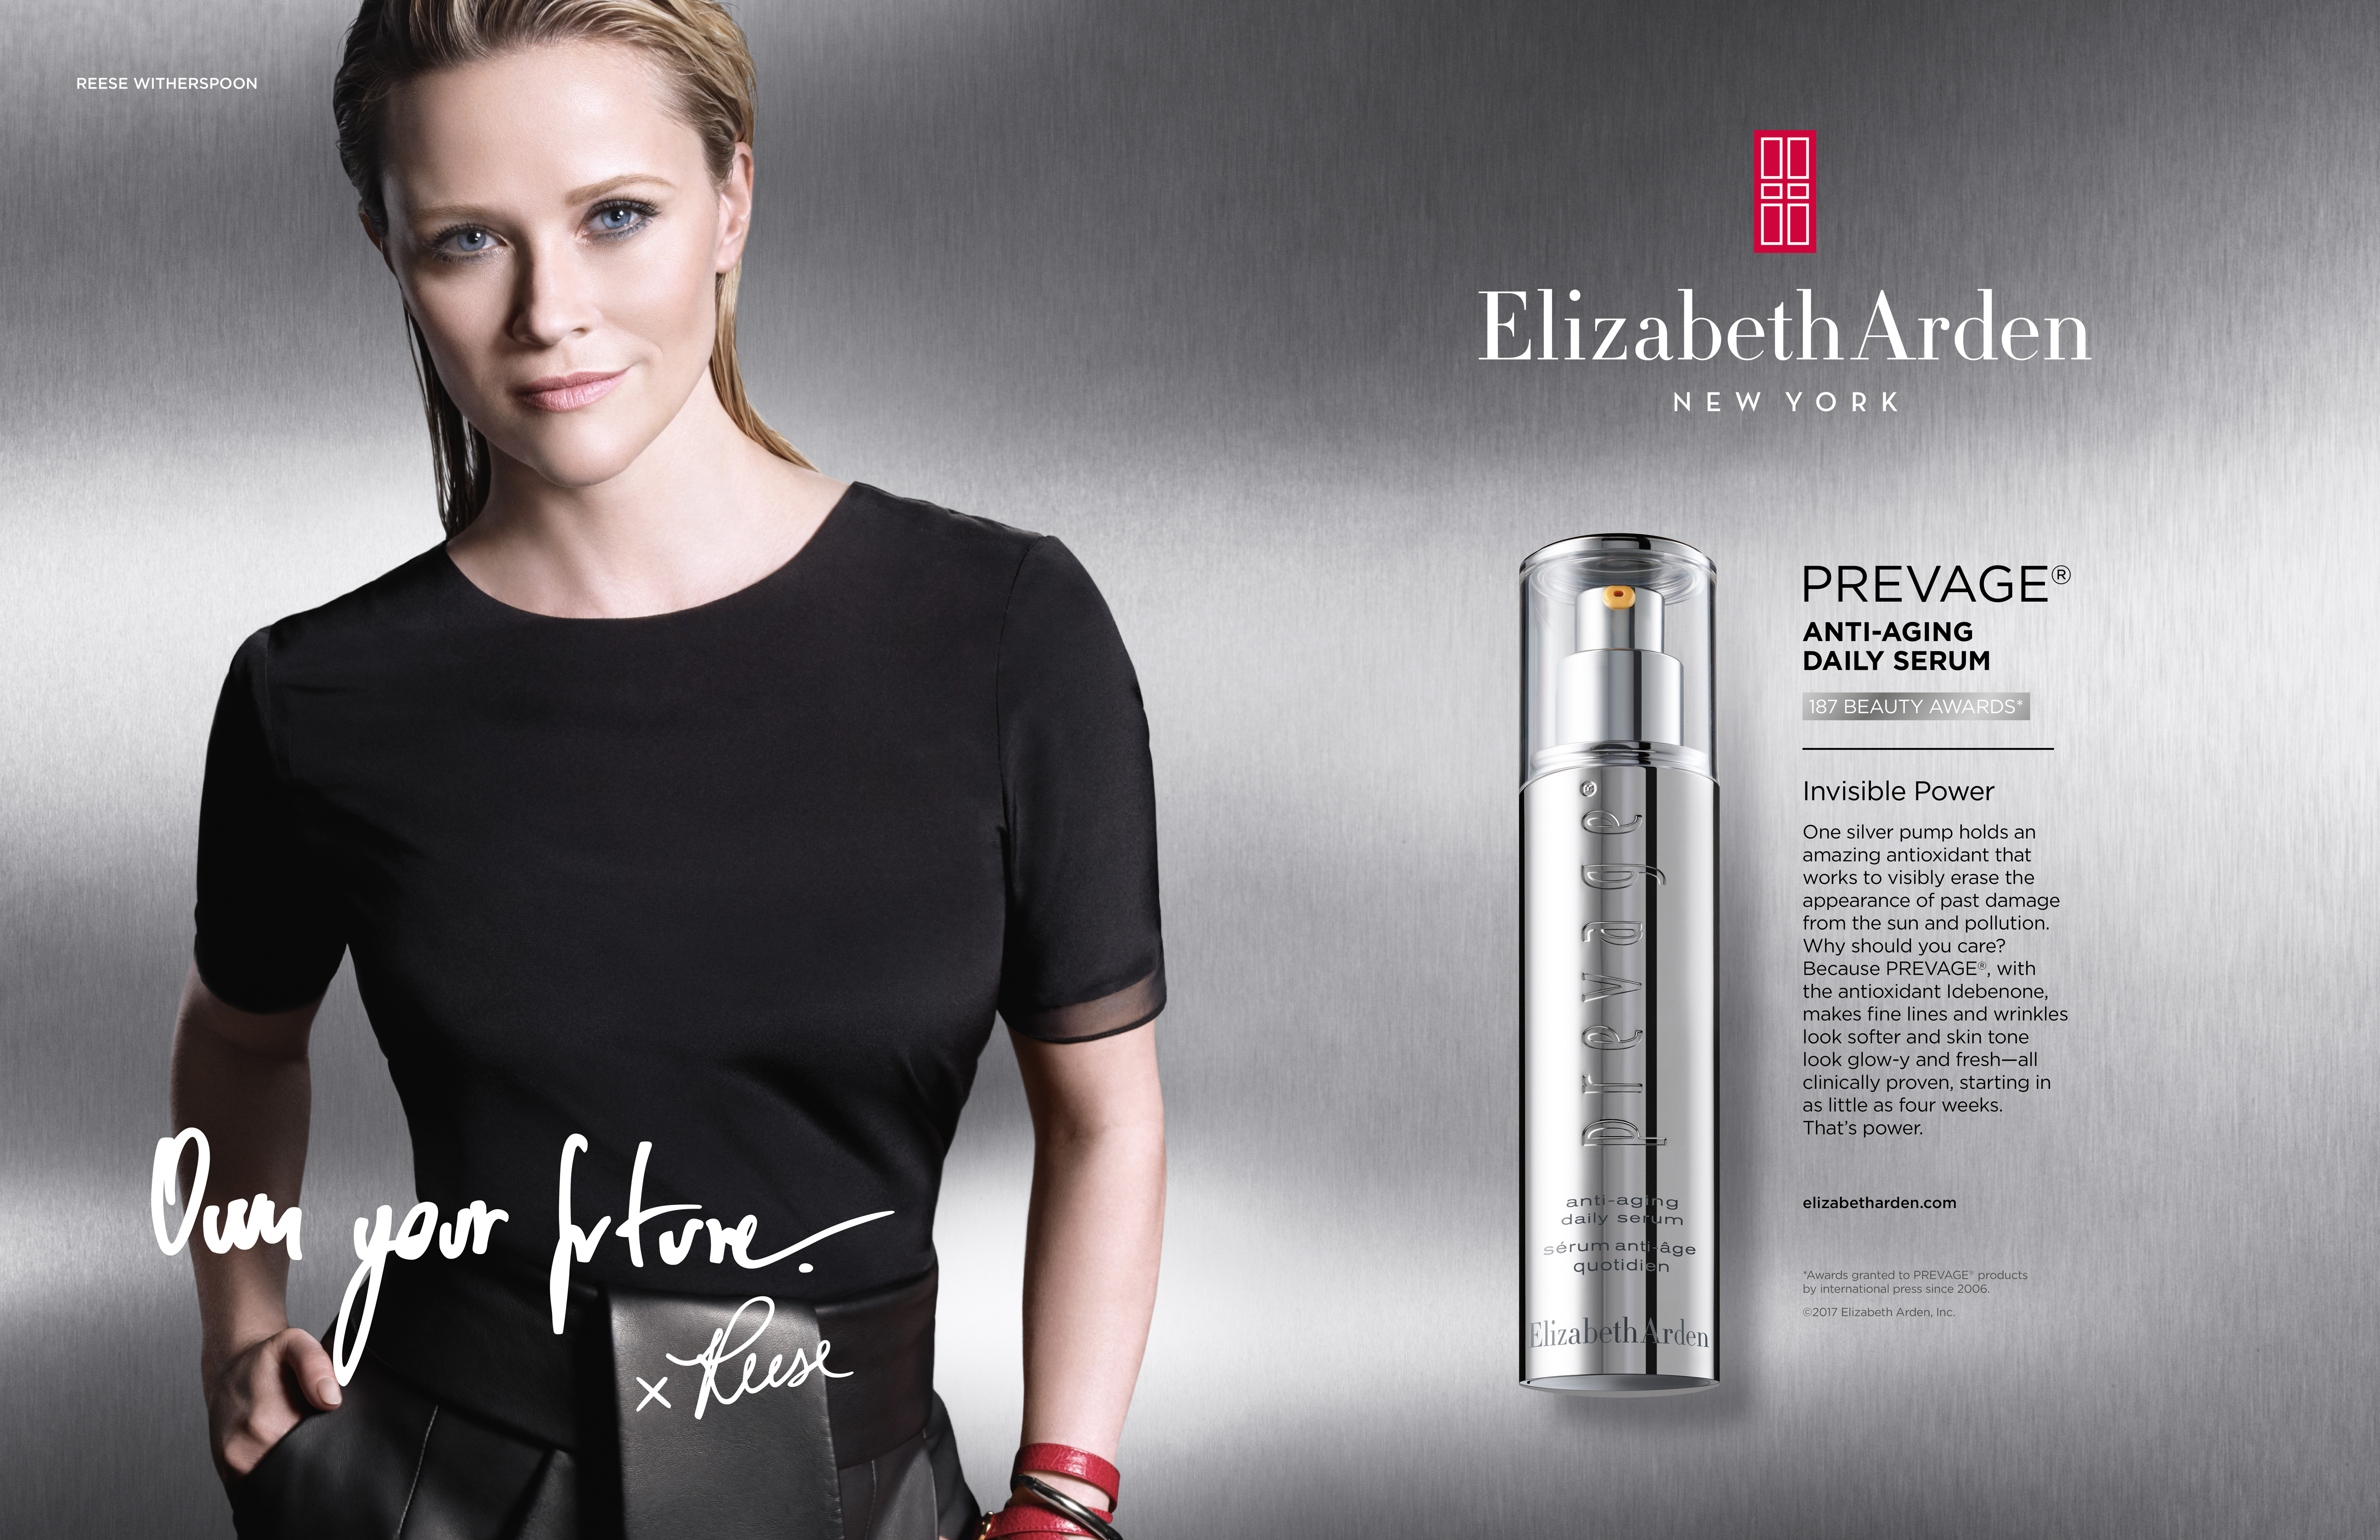 elizabeth arden reese witherspoon perfume